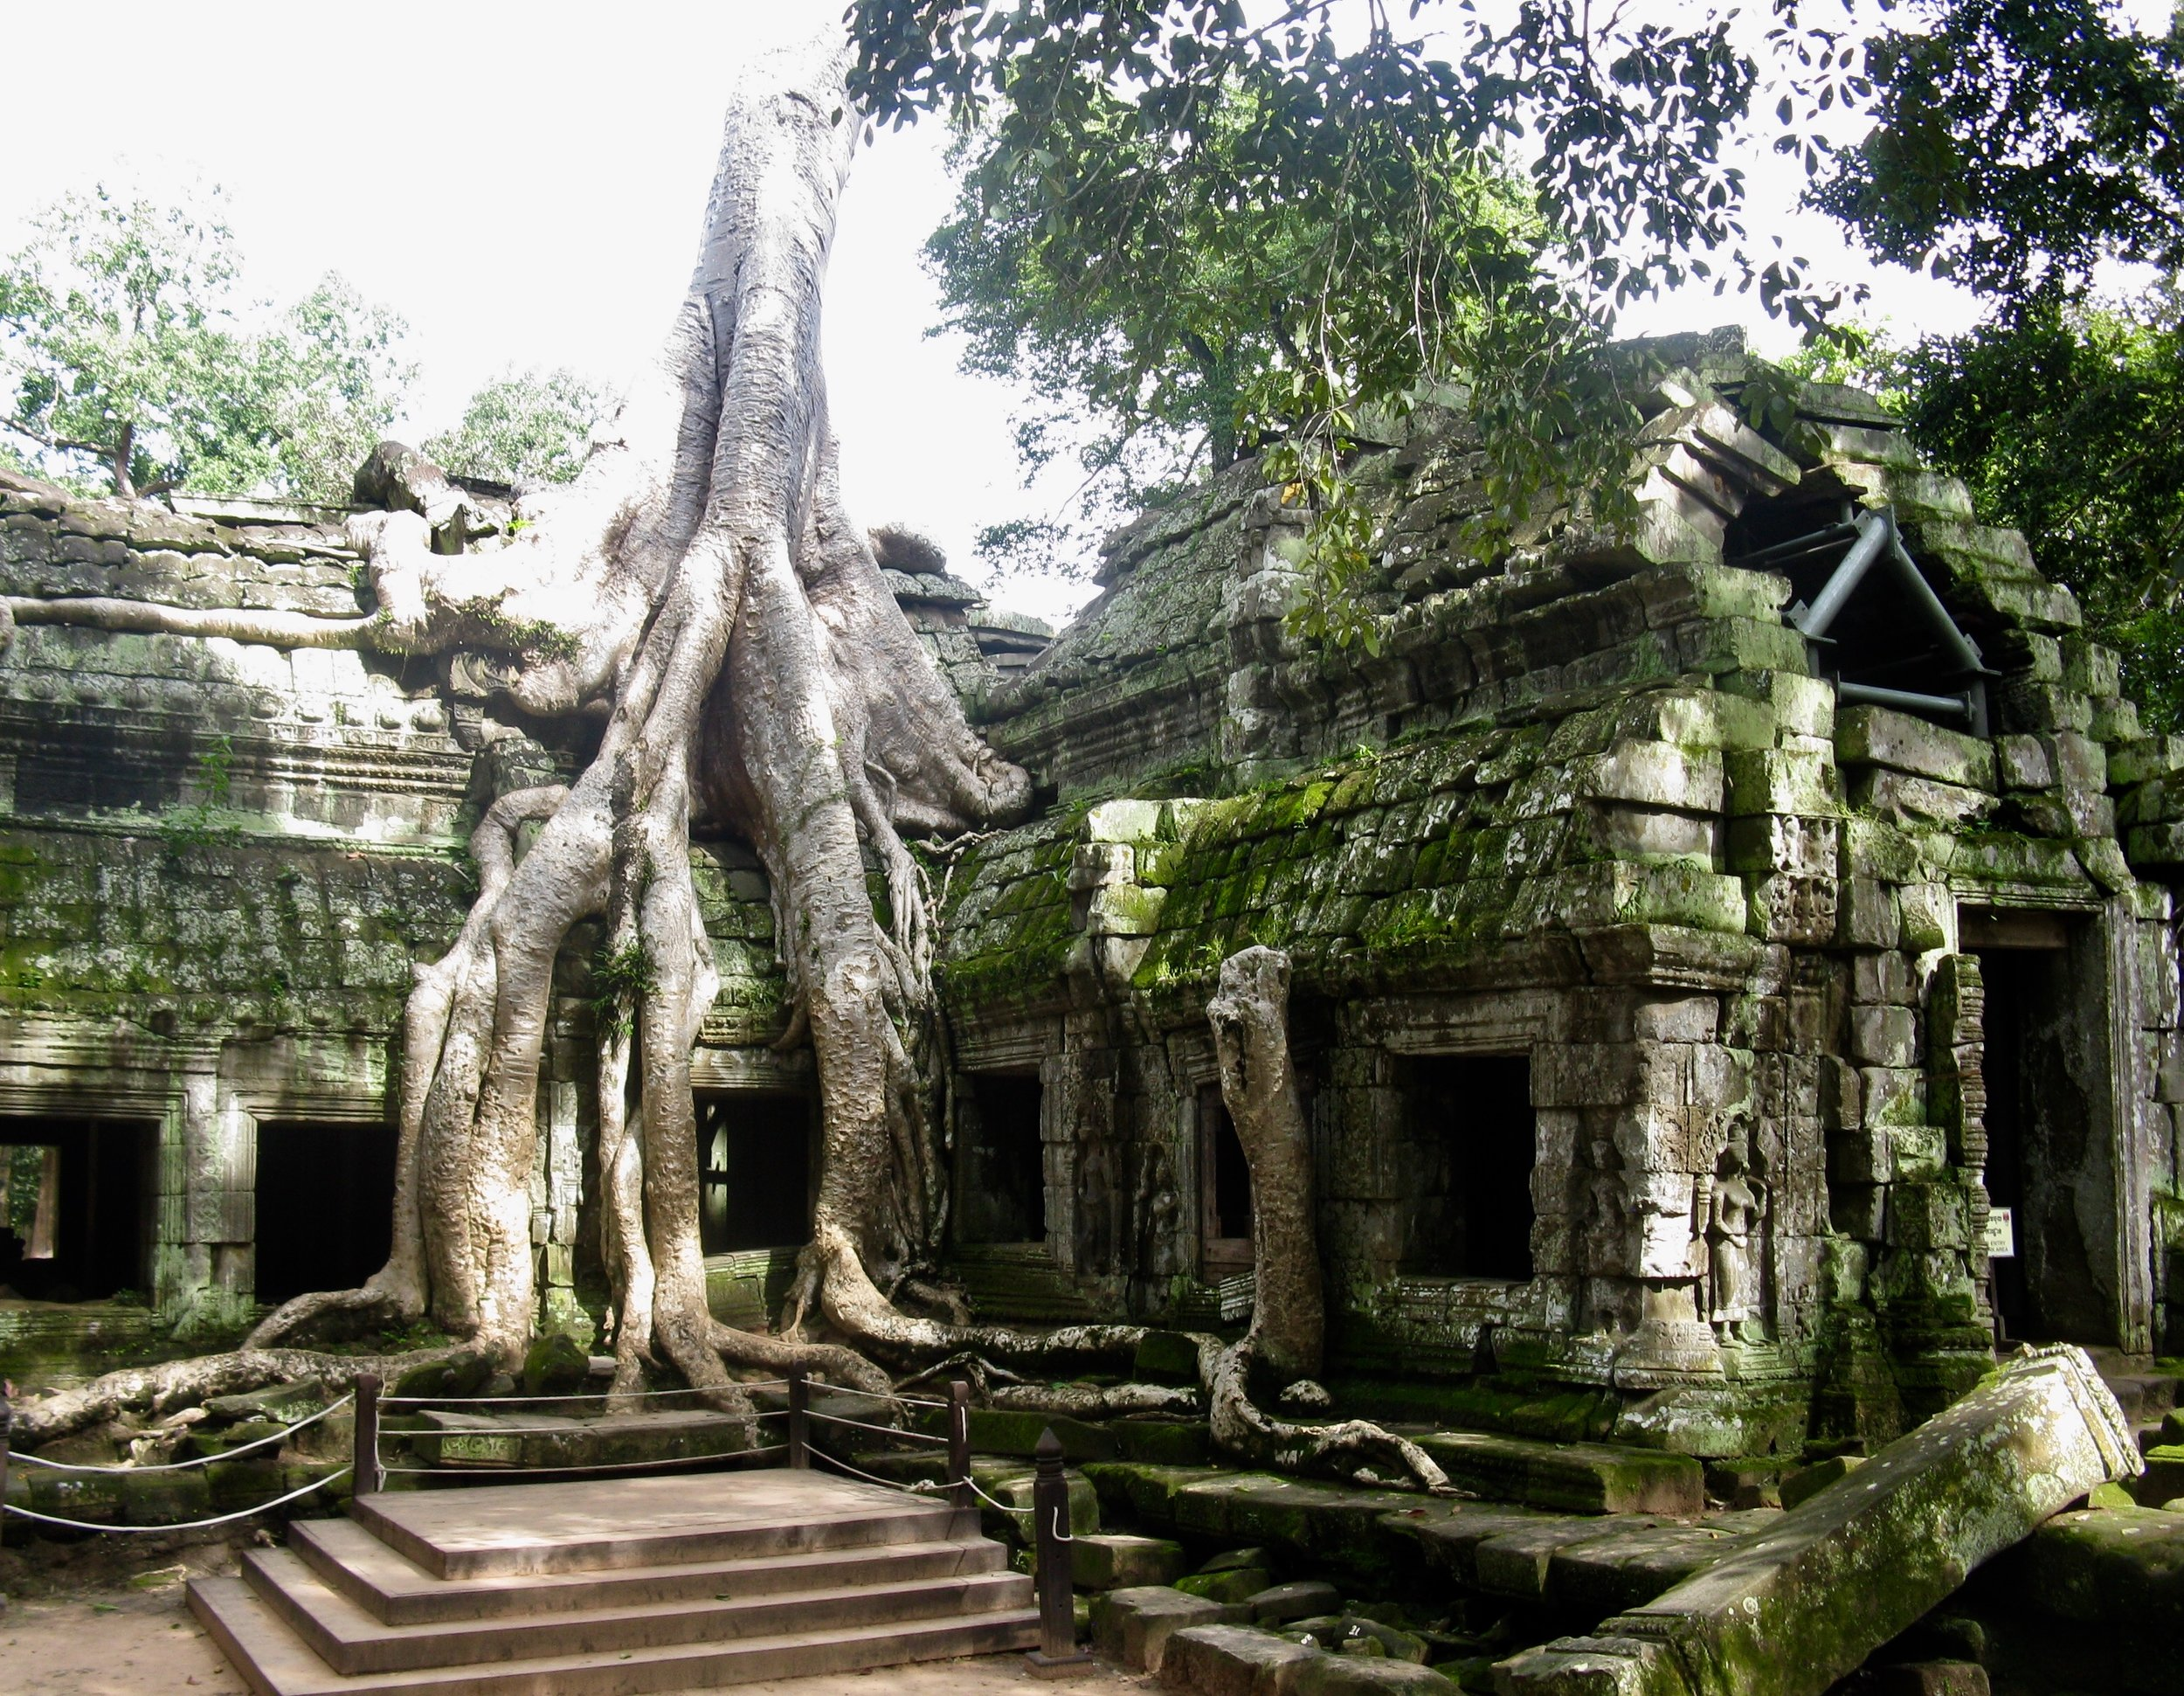 The jungle has reclaimed parts of Ta Prohm temple, which makes it a fun one to explore